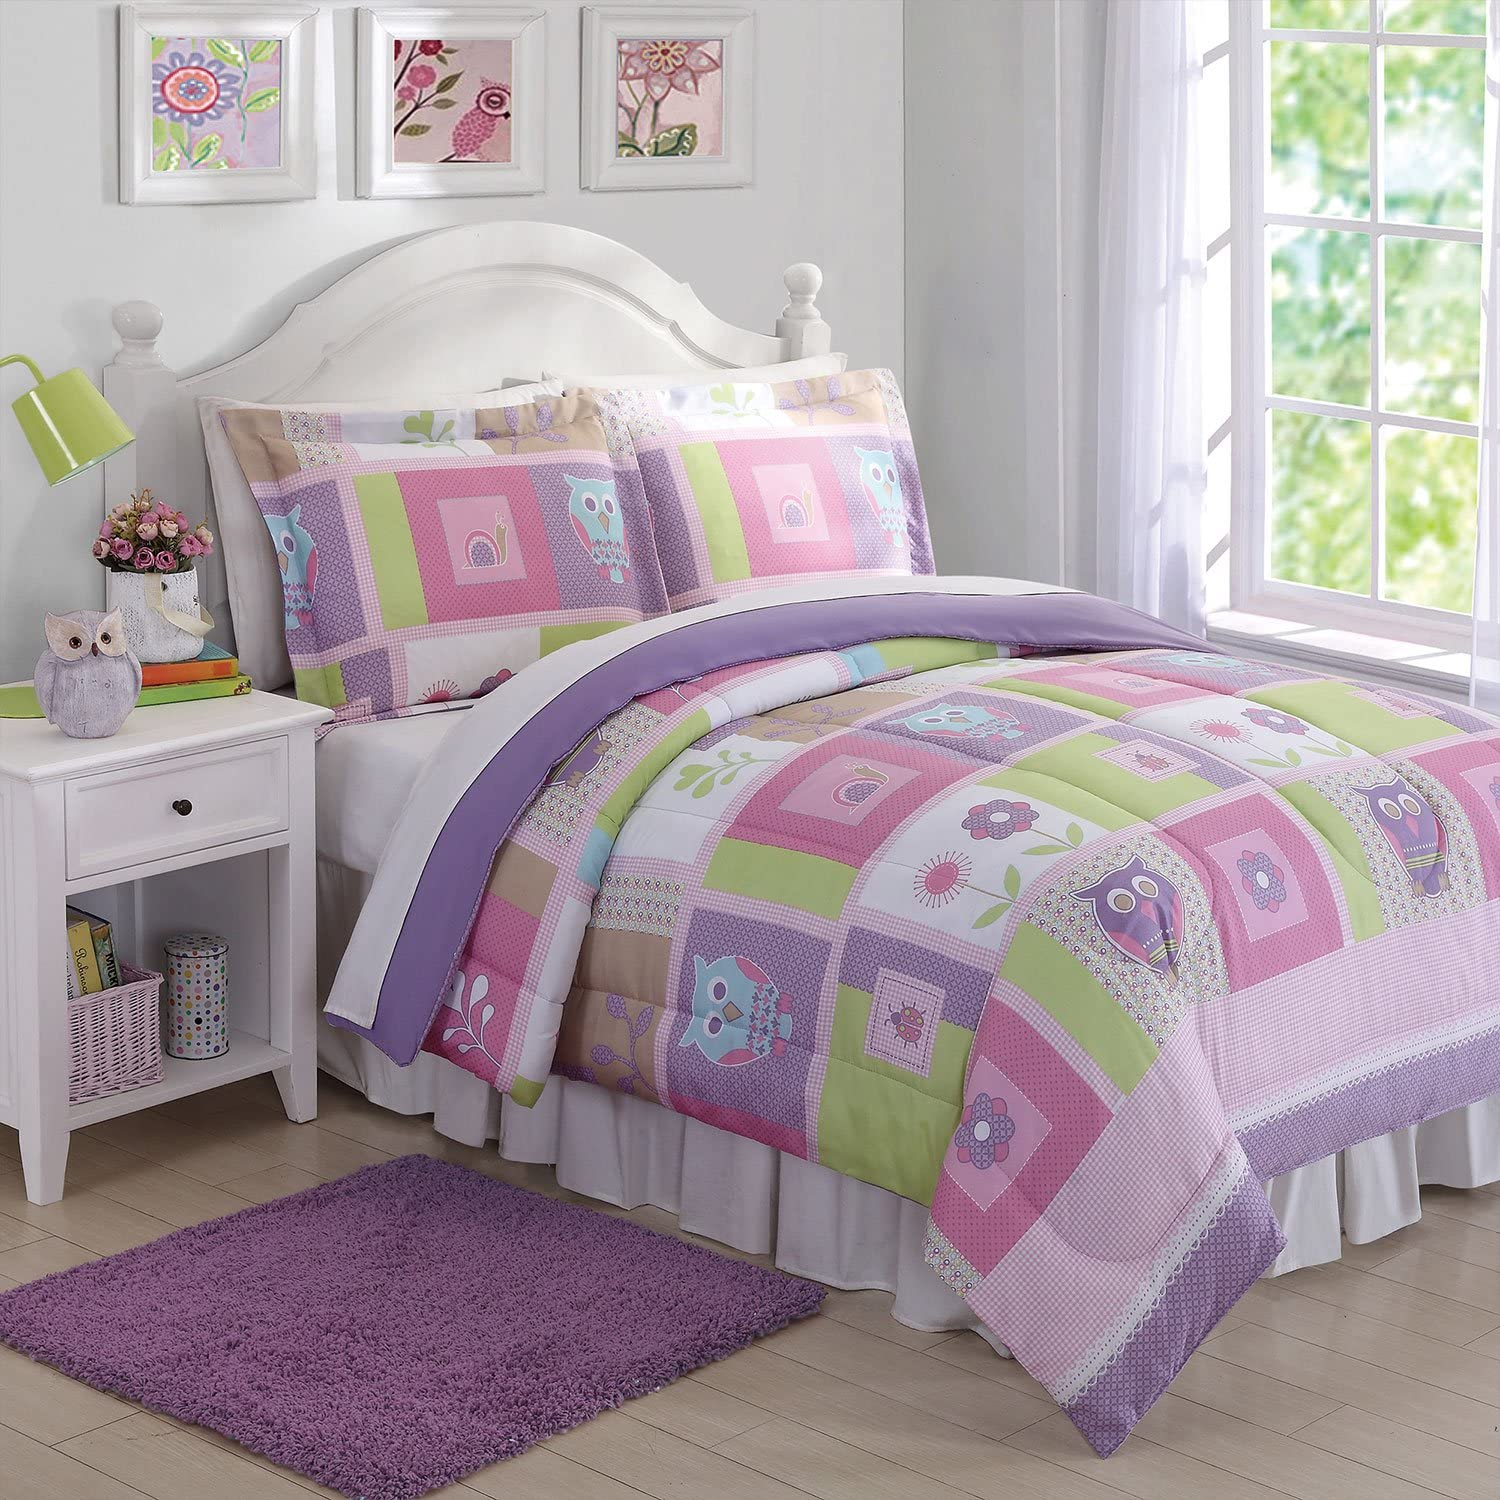 My World Comforter Set (Happy Owls, Full/Queen)